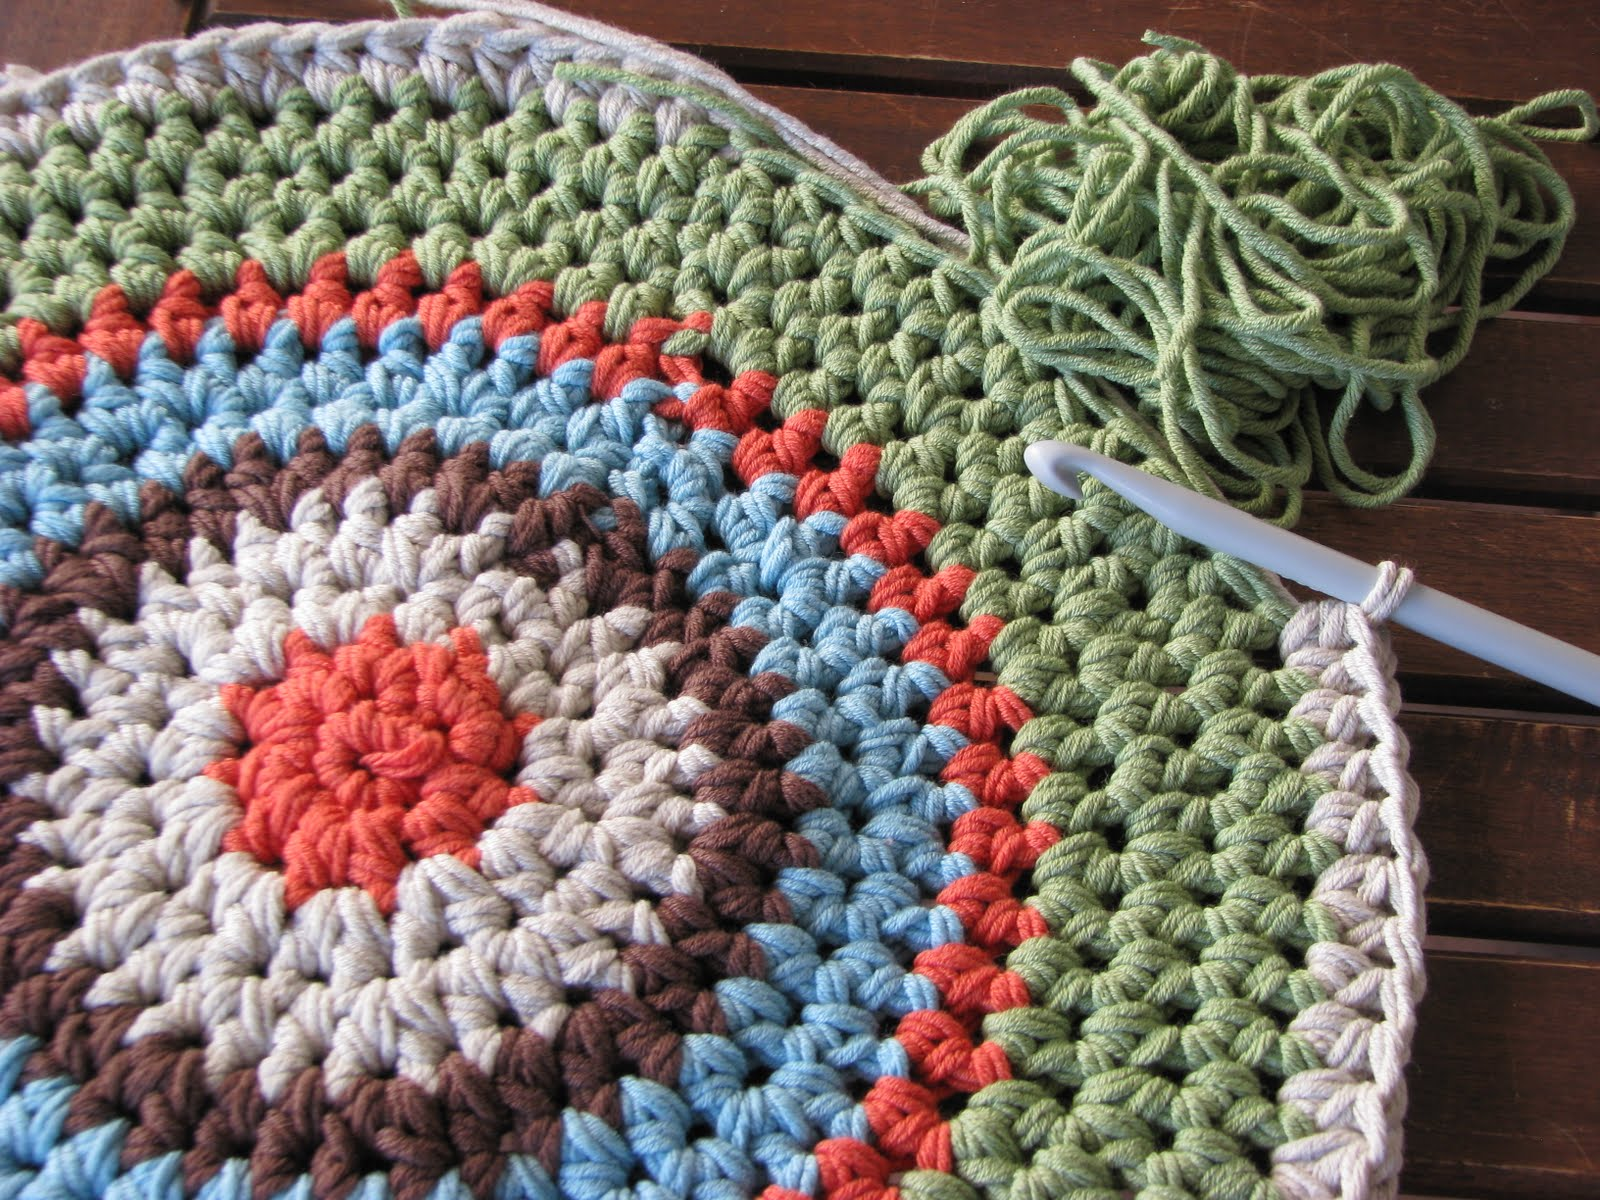 Yarn Companies Free Crochet Patterns : Crochet Free Pattern Rug Yarn Free Patterns For Crochet